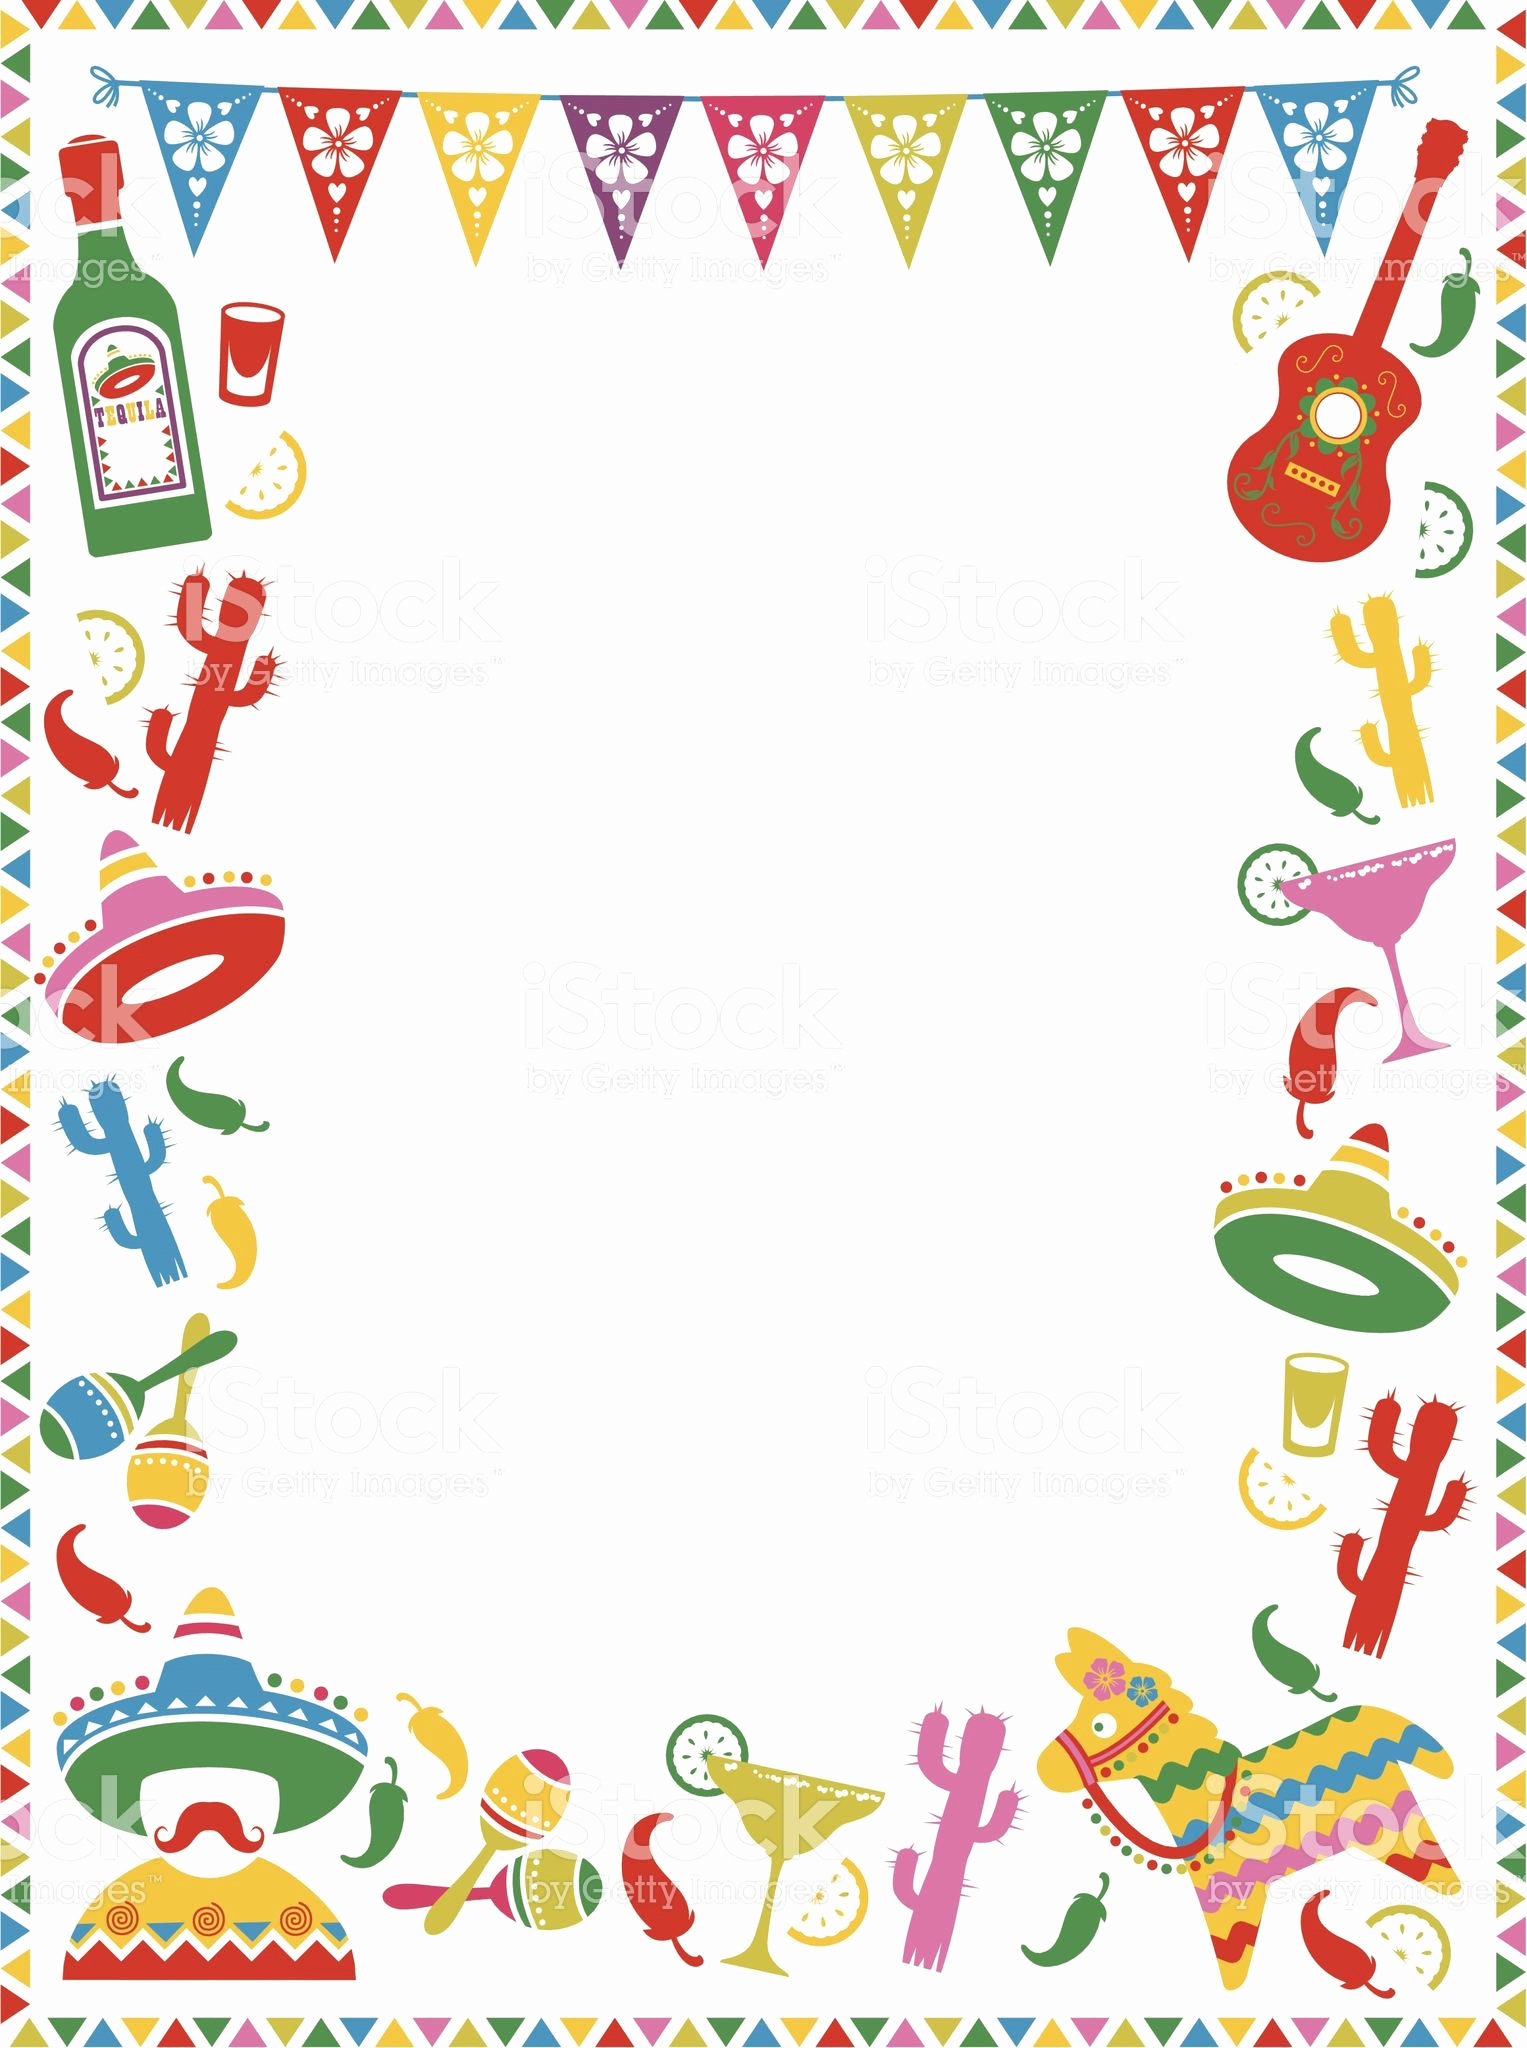 Mexican Fiesta Invitation Templates Free Unique A Mexican themed Border Ideal for Menus or Party Invites